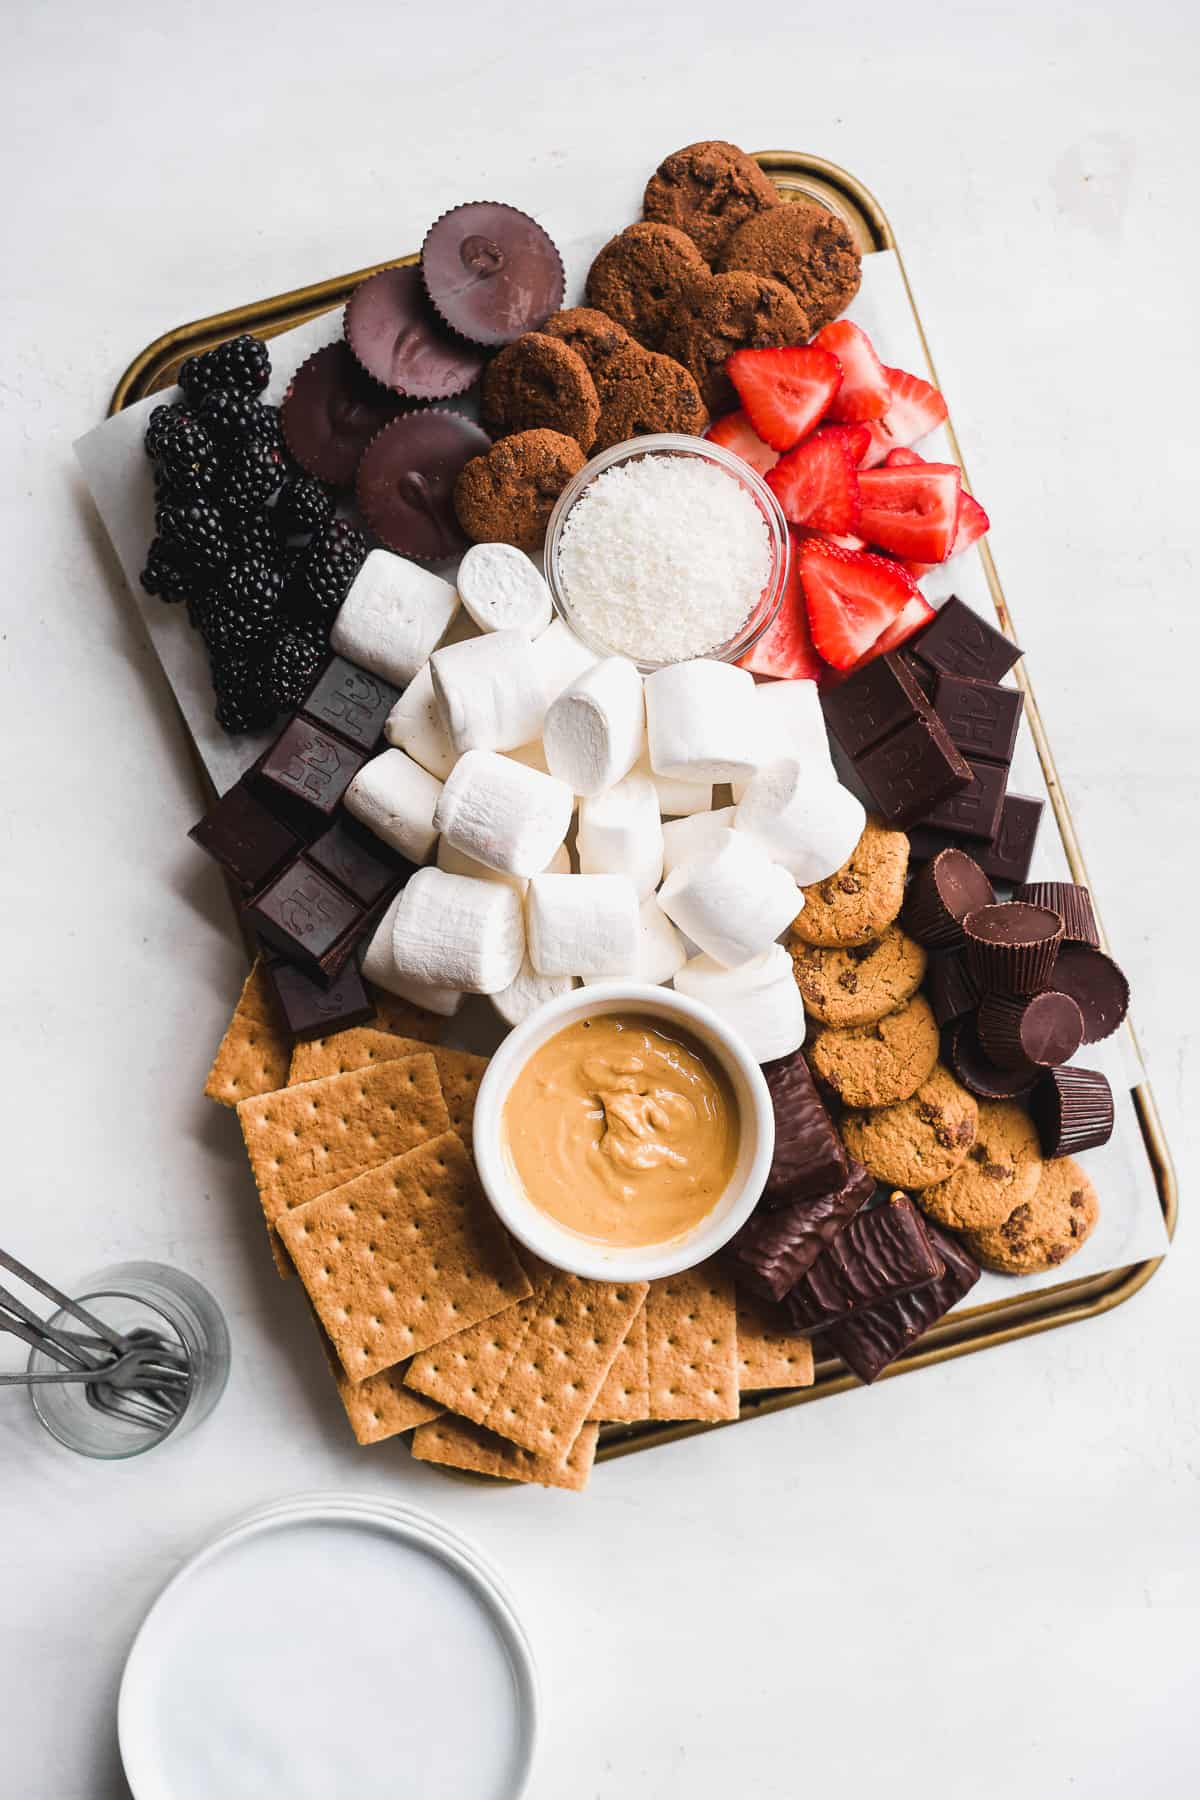 Overhead view of a platter with dessert toppings spread out on a white surface.